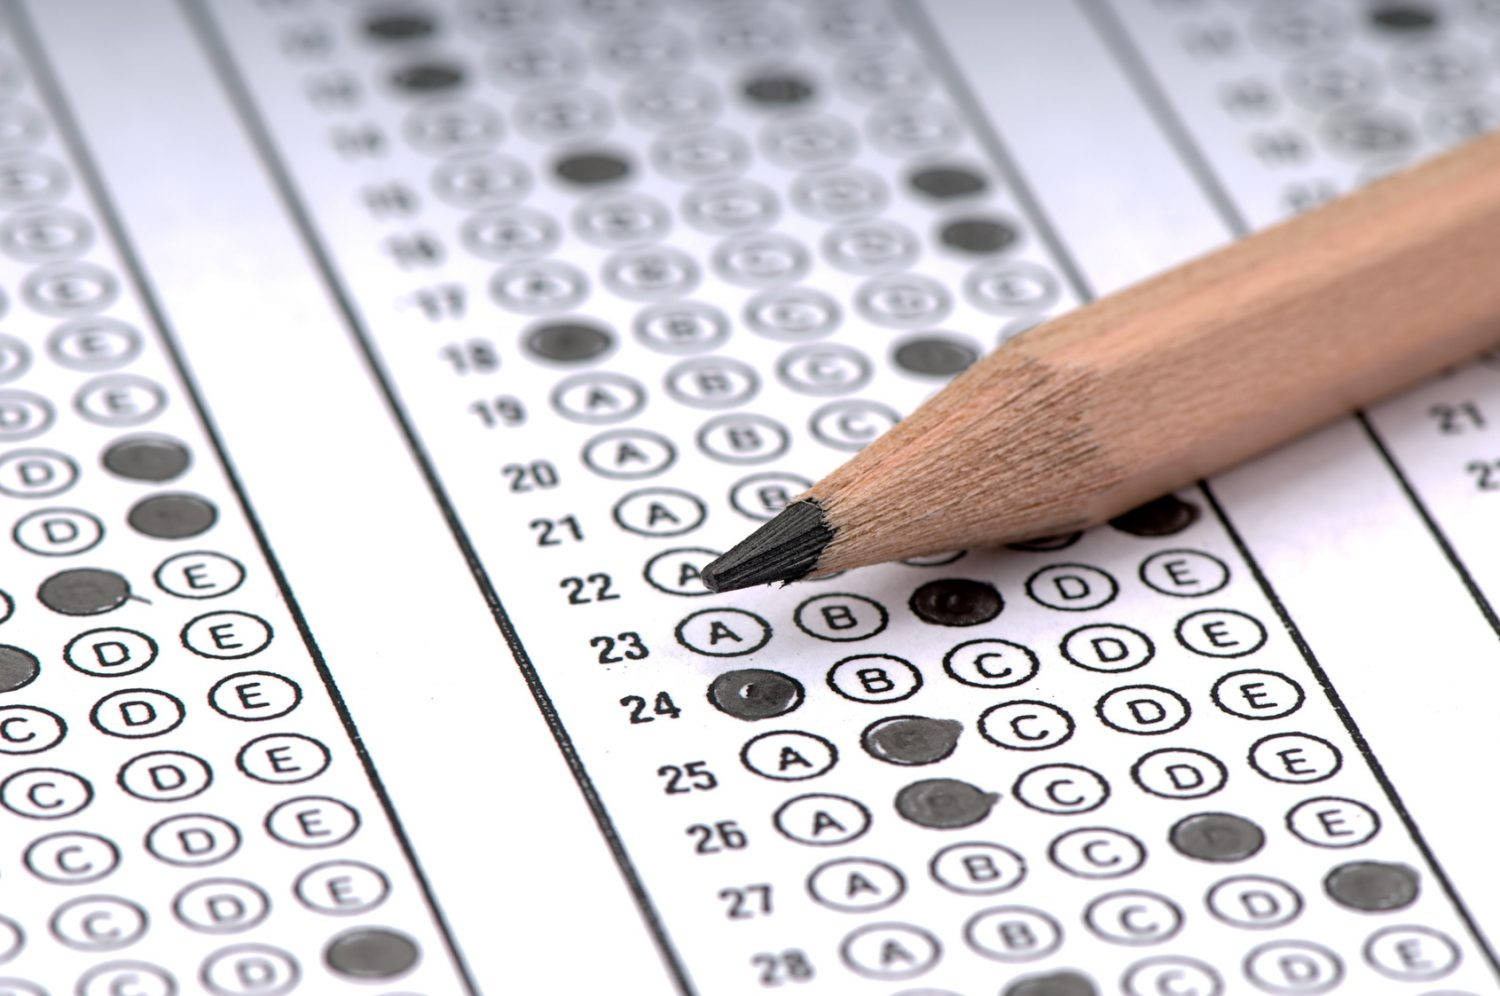 Standardized testing has been around since the early 600's. Though today's testing is much different from back then, testing today causes more stress within students and they are becoming more and more of an inaccurate source to measure a student's ability to learn.